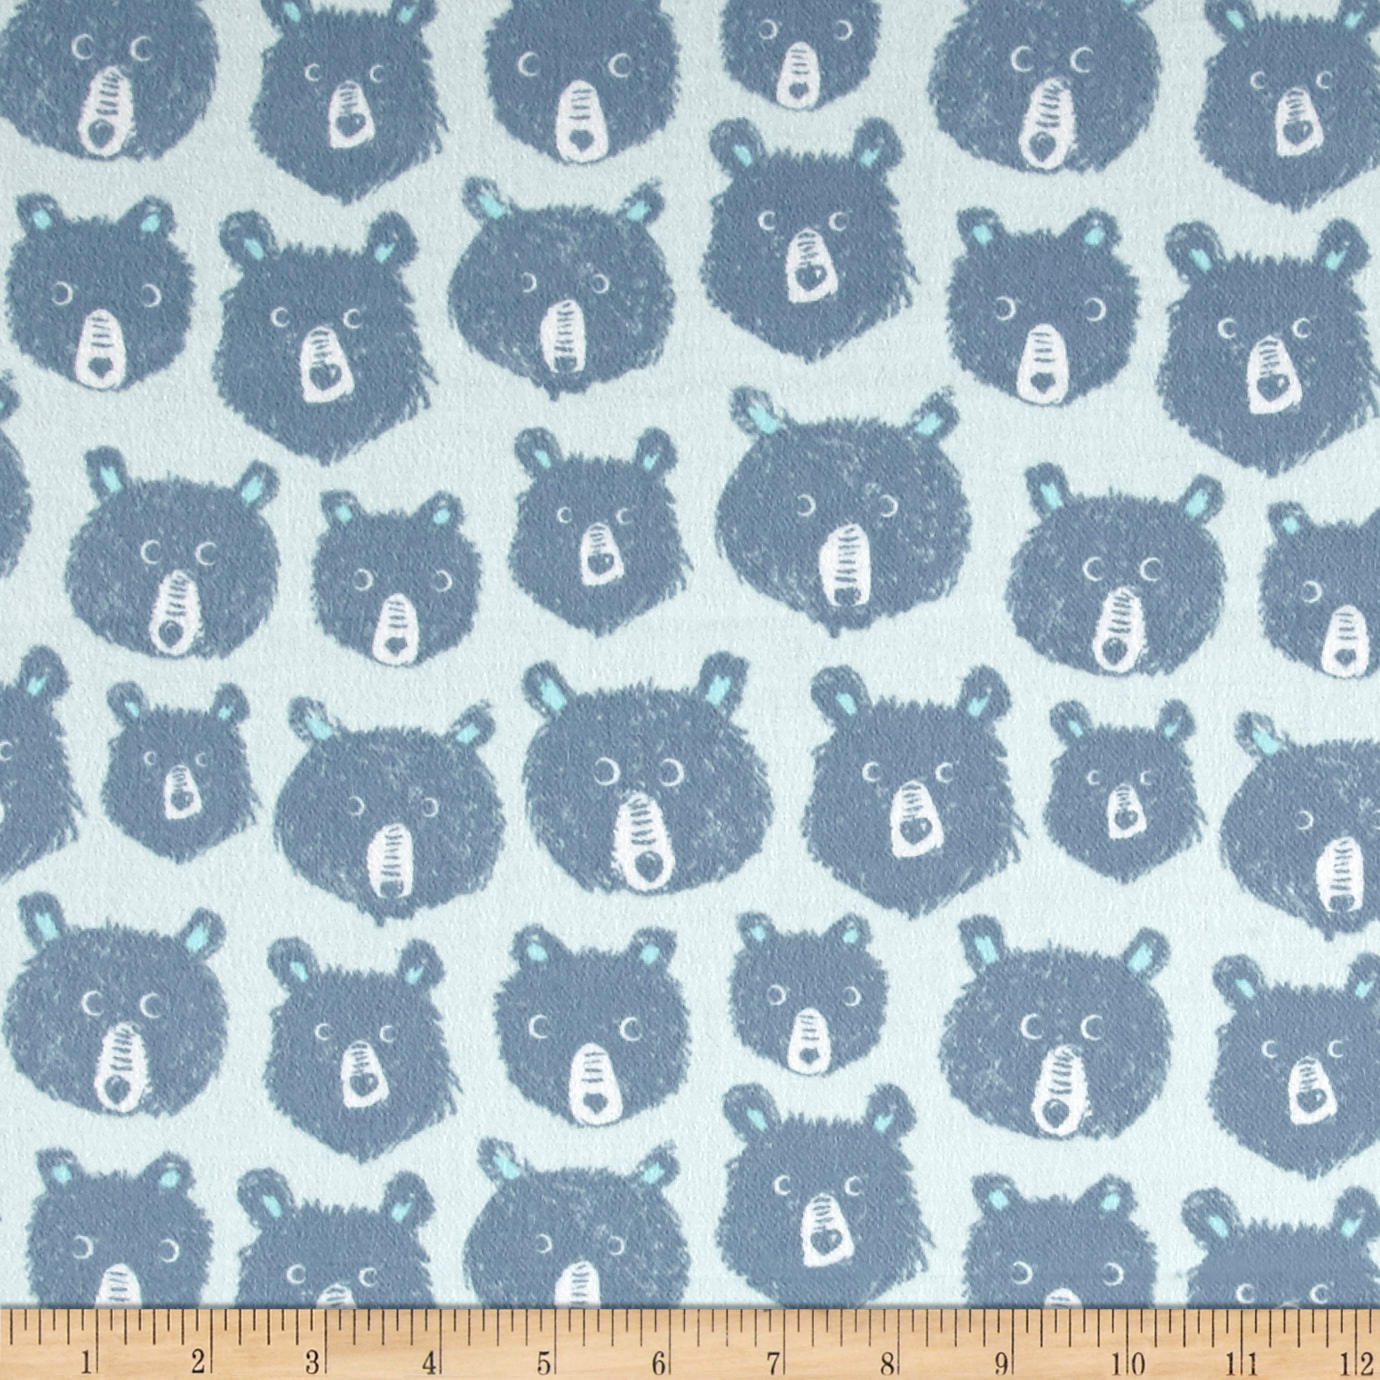 Image of Cotton + Steel Brushed Cotton Cozy Teddy And the Bears Blue Fabric